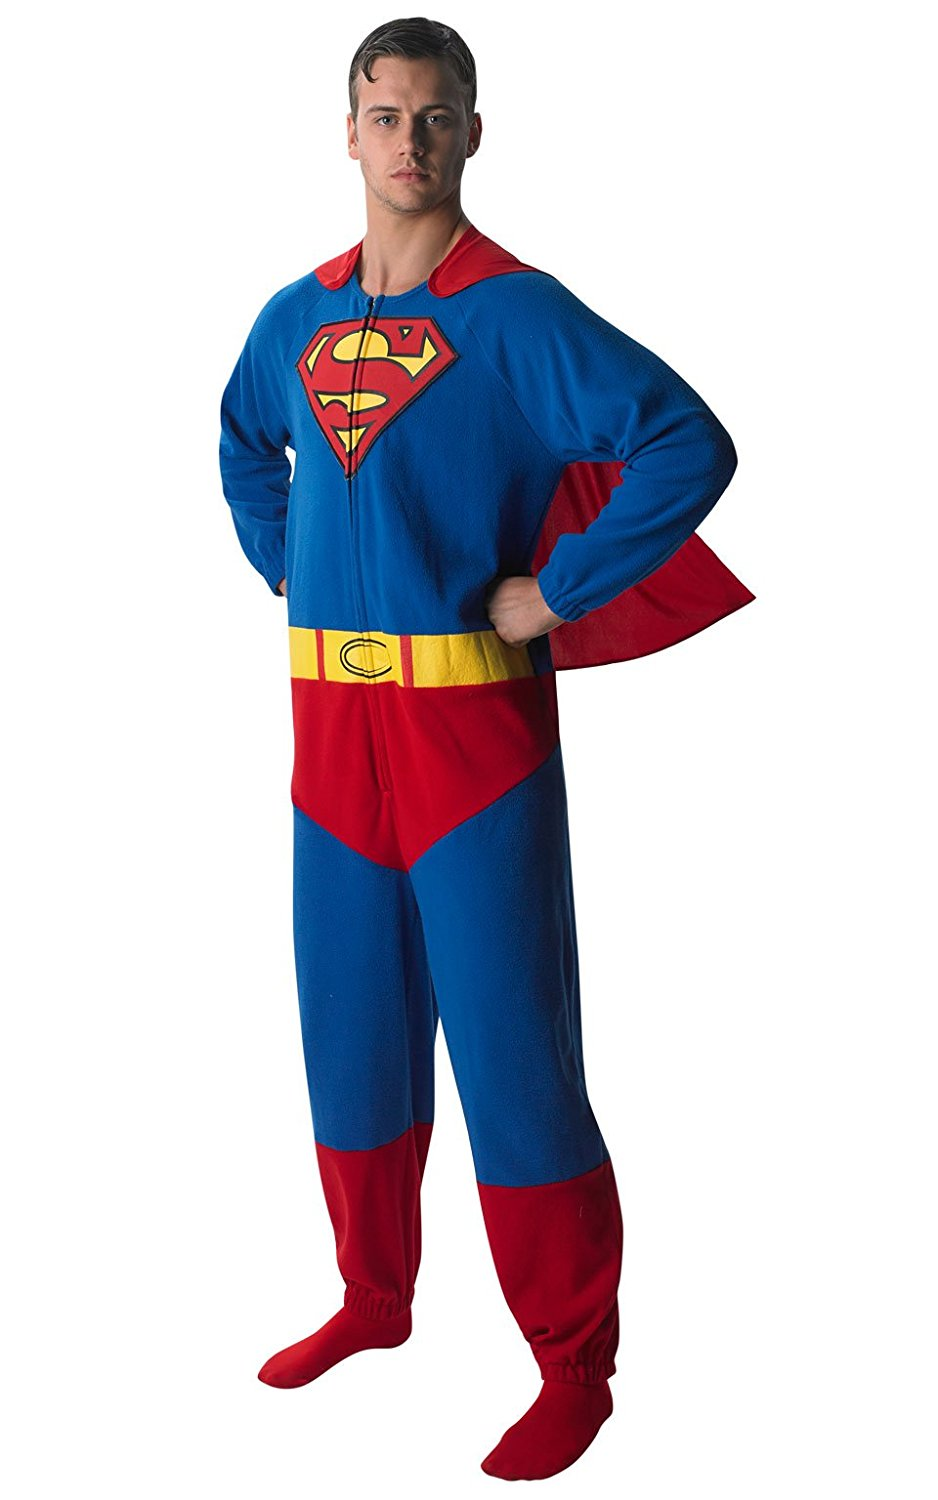 5533b8a0e430 Get Quotations · Small Mens Superman Onesie Costume